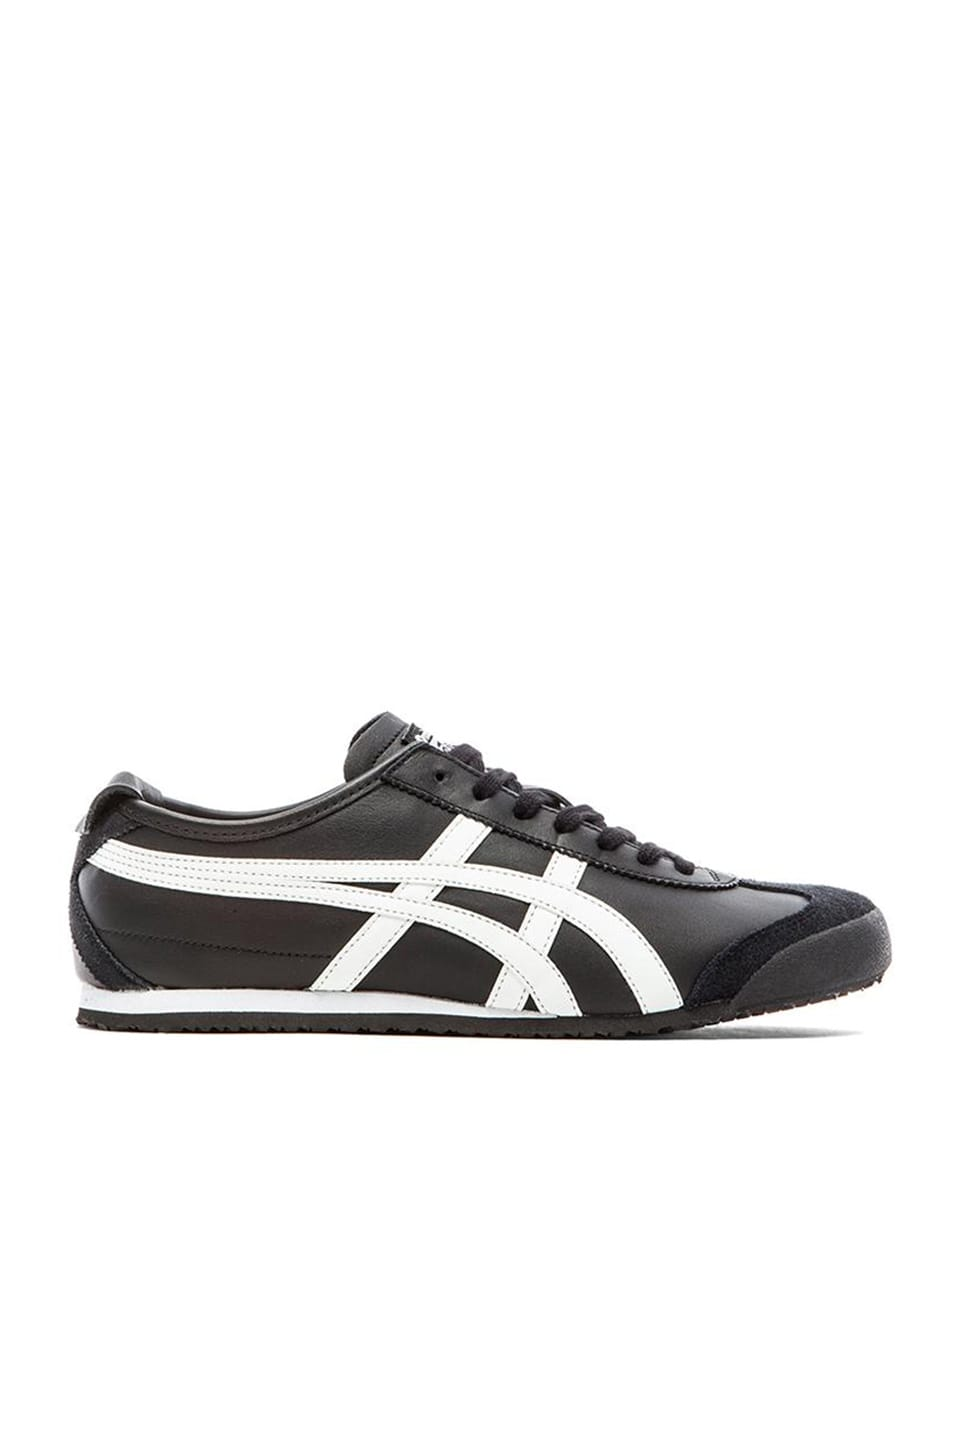 huge selection of 09fd2 161b8 Mexico 66, Onitsuka Tiger